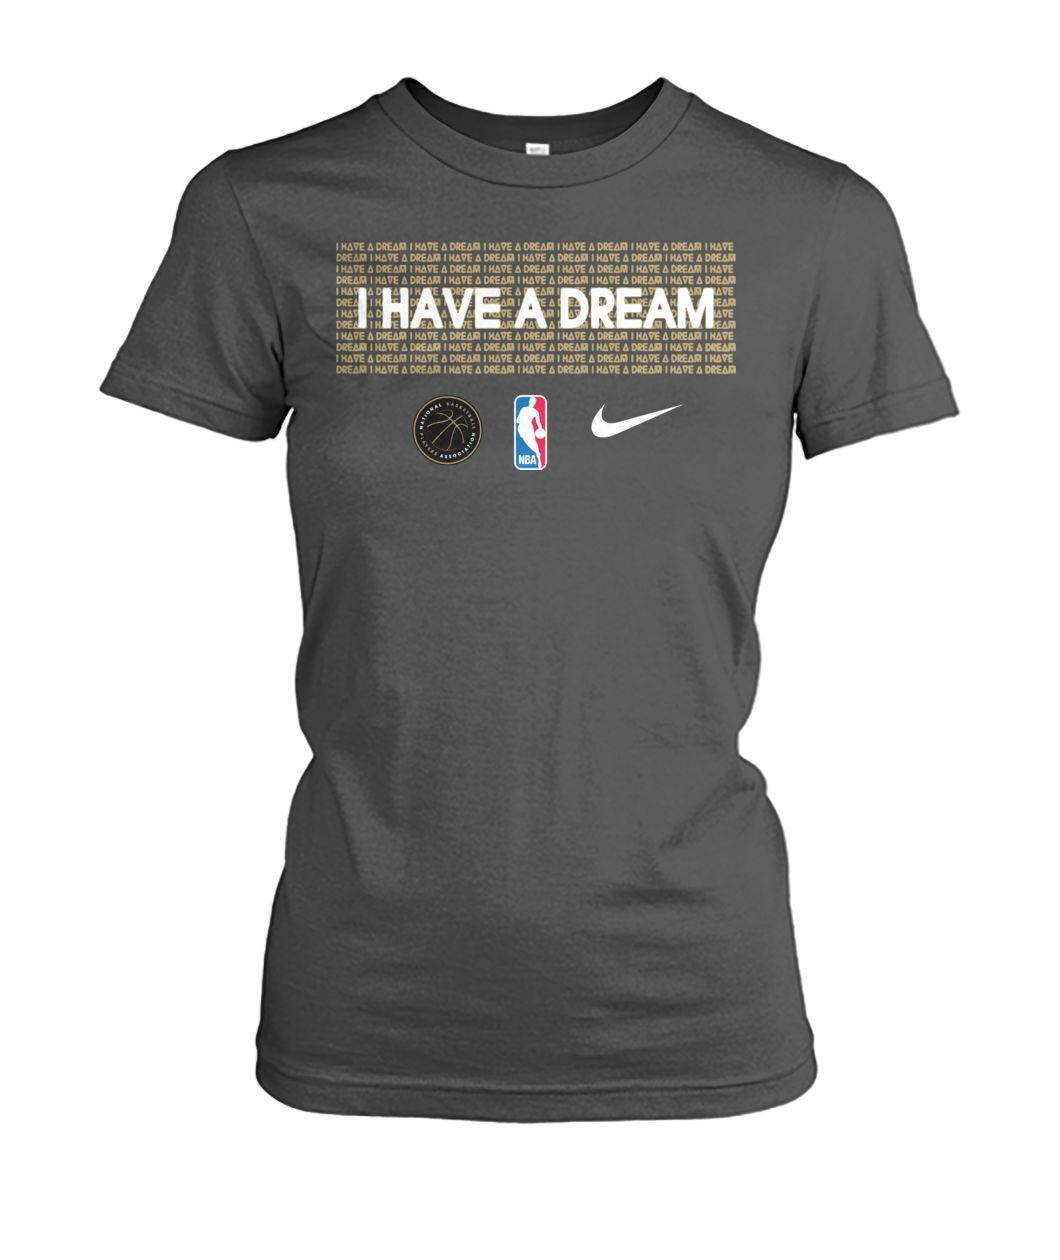 e2d11374bae Martin luther king I have a dream NBA shirt and hoodie